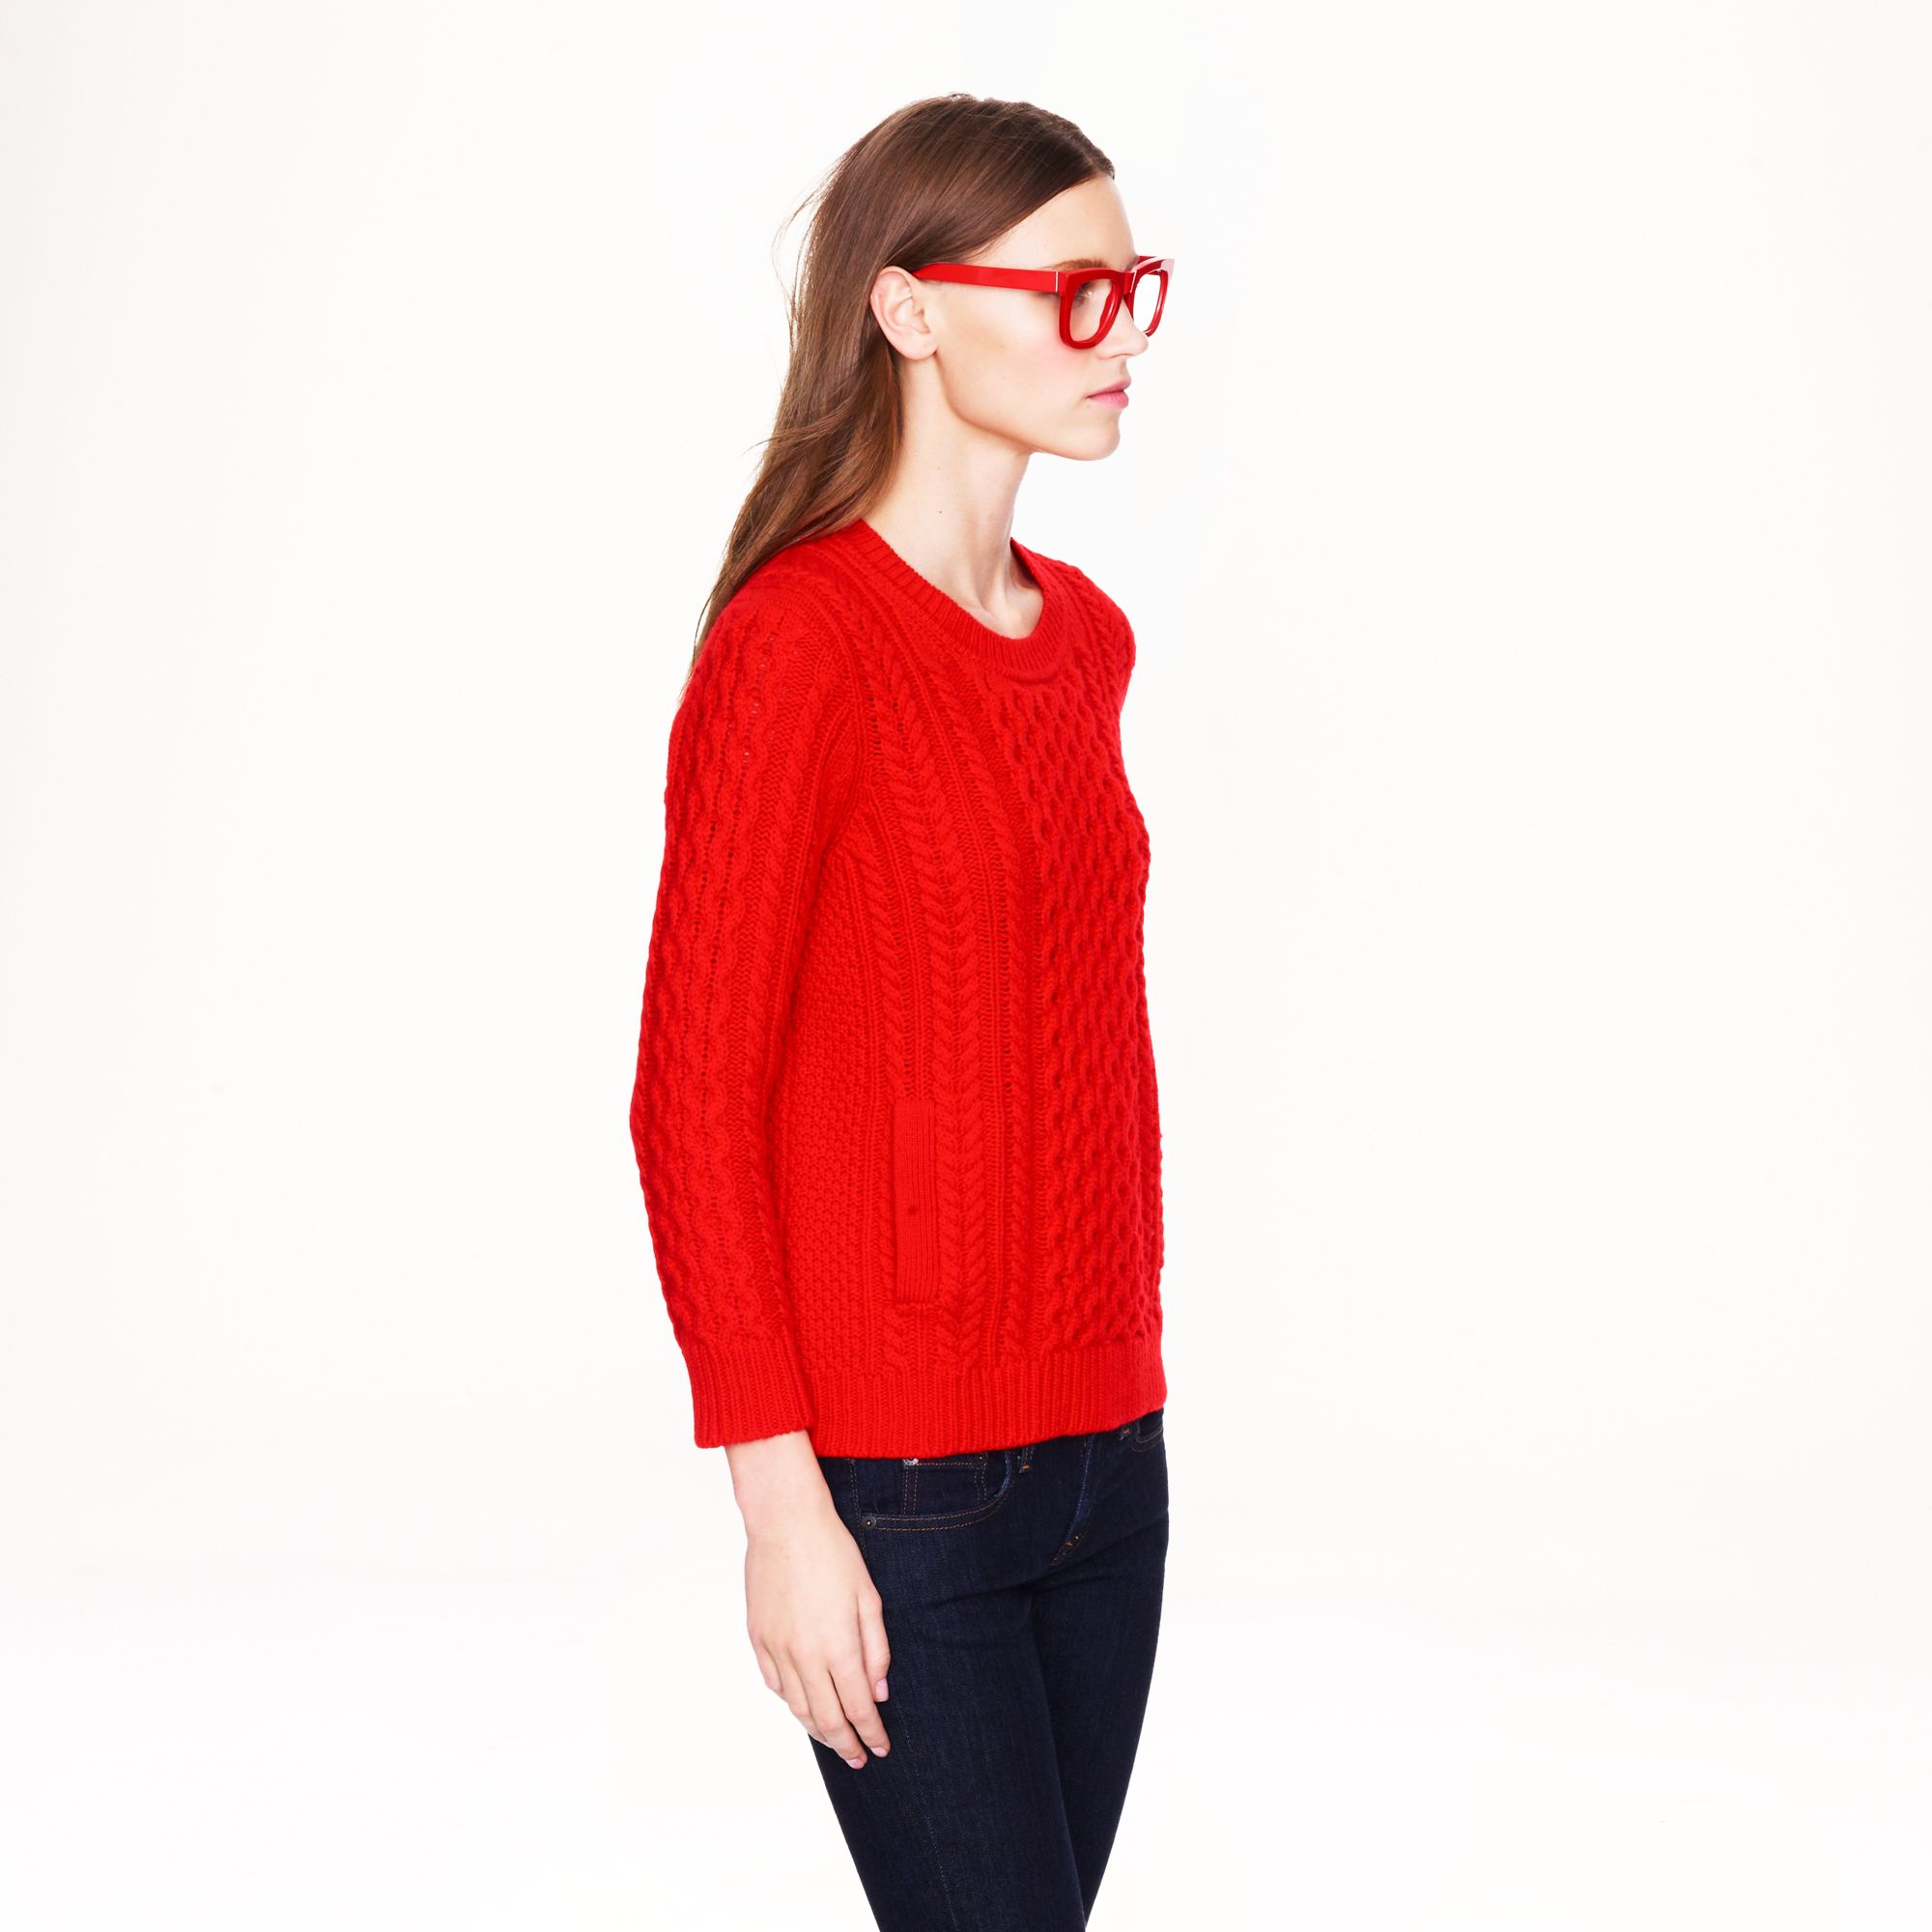 J.crew Cable Knit Pocket Sweater in Red | Lyst